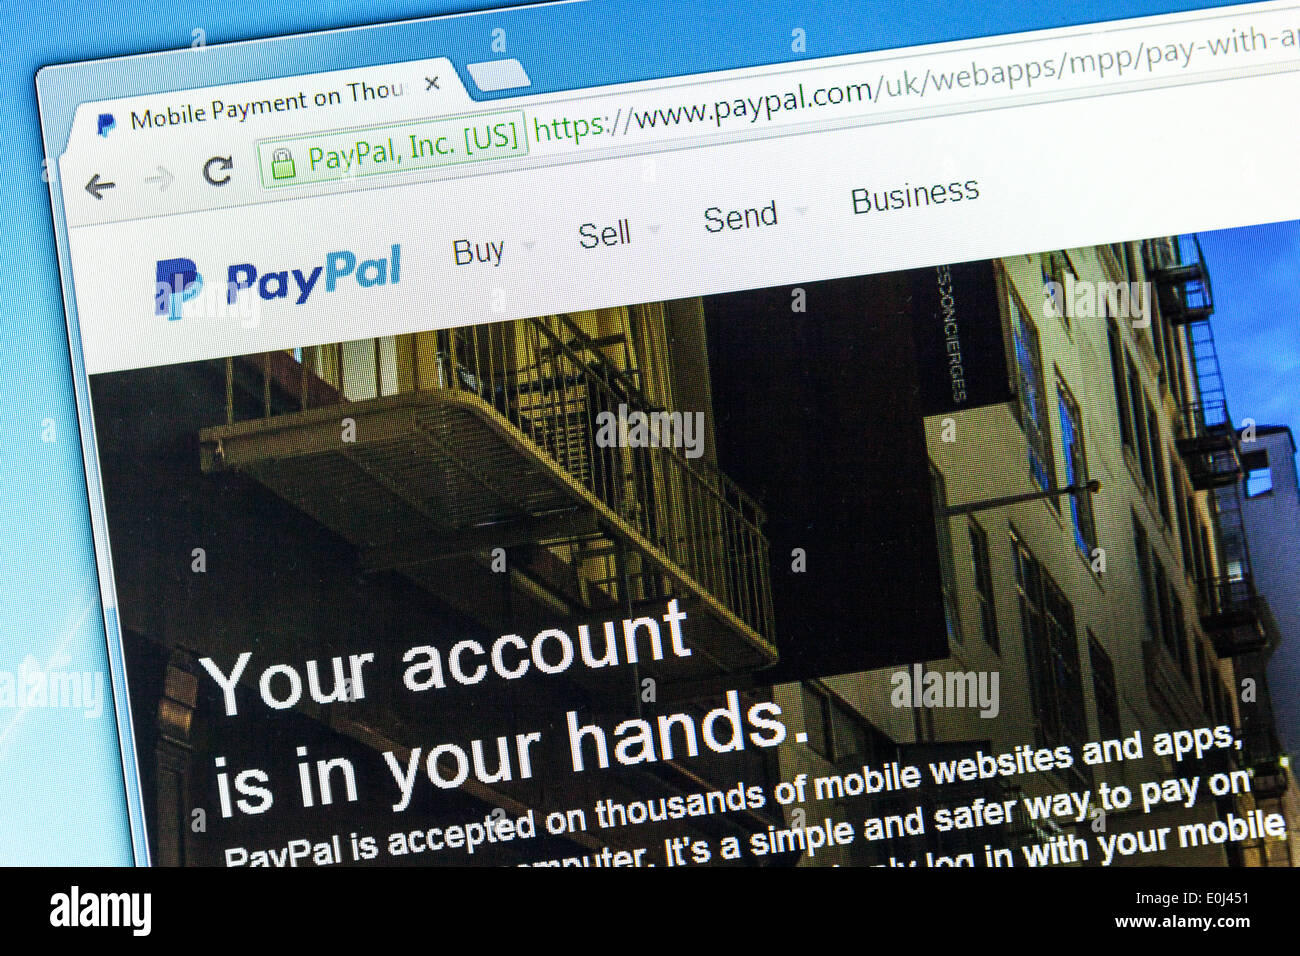 Closeup of Paypal web page after the company's rebranding in 2014, seen in Google Chrome browser on a PC monitor. - Stock Image